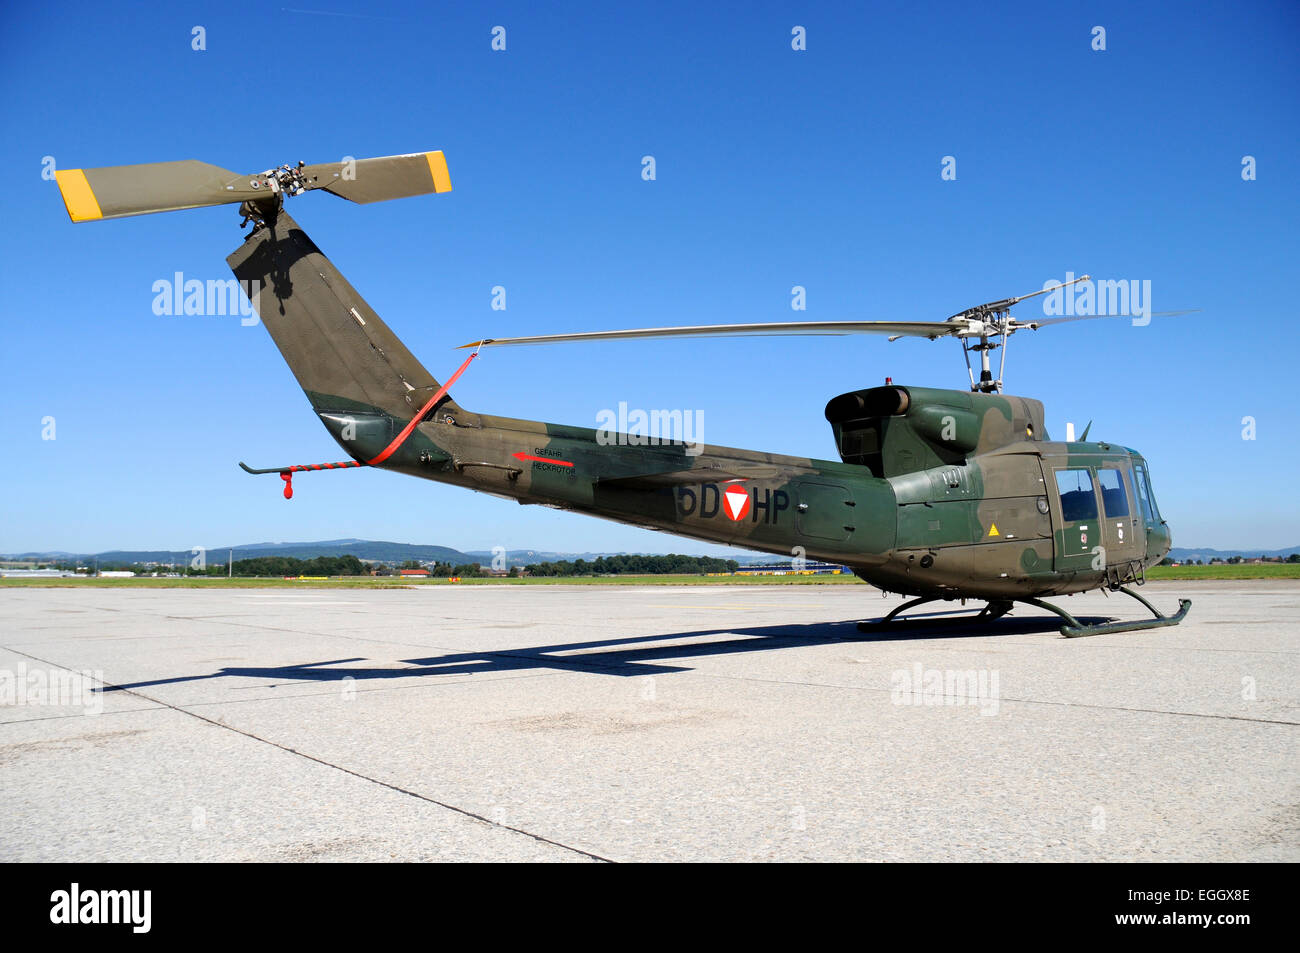 Agusta-Bell AB212 helicopter of the Austrian Air Force on the base at Linz, Austria. Stock Photo